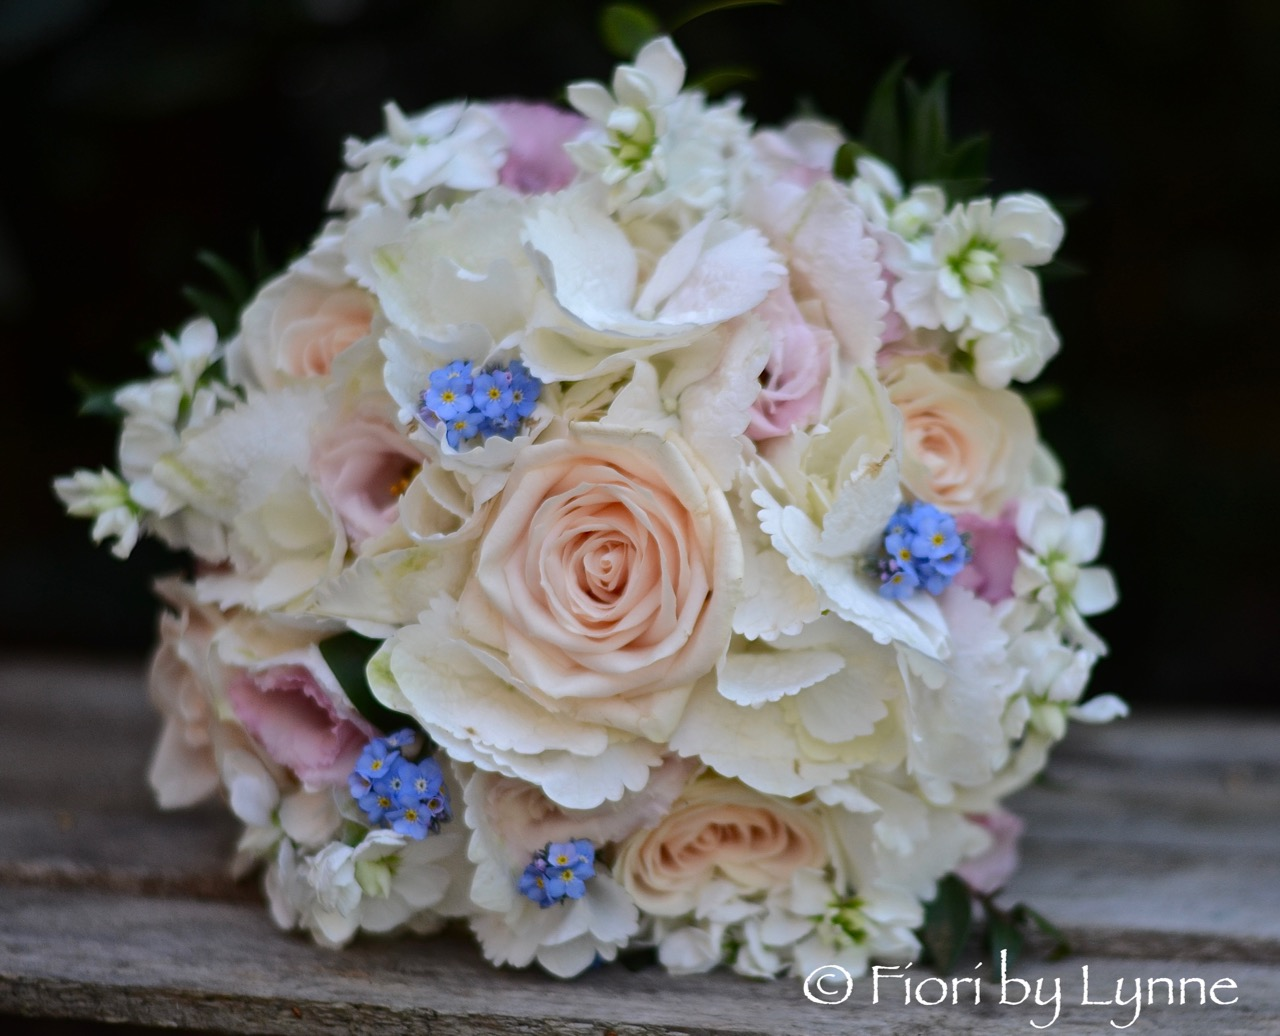 Bouquet-white-hydrangea+stocks,champagne-rose,pale-pink-lisianthus,blue-forget-me-not..jpg